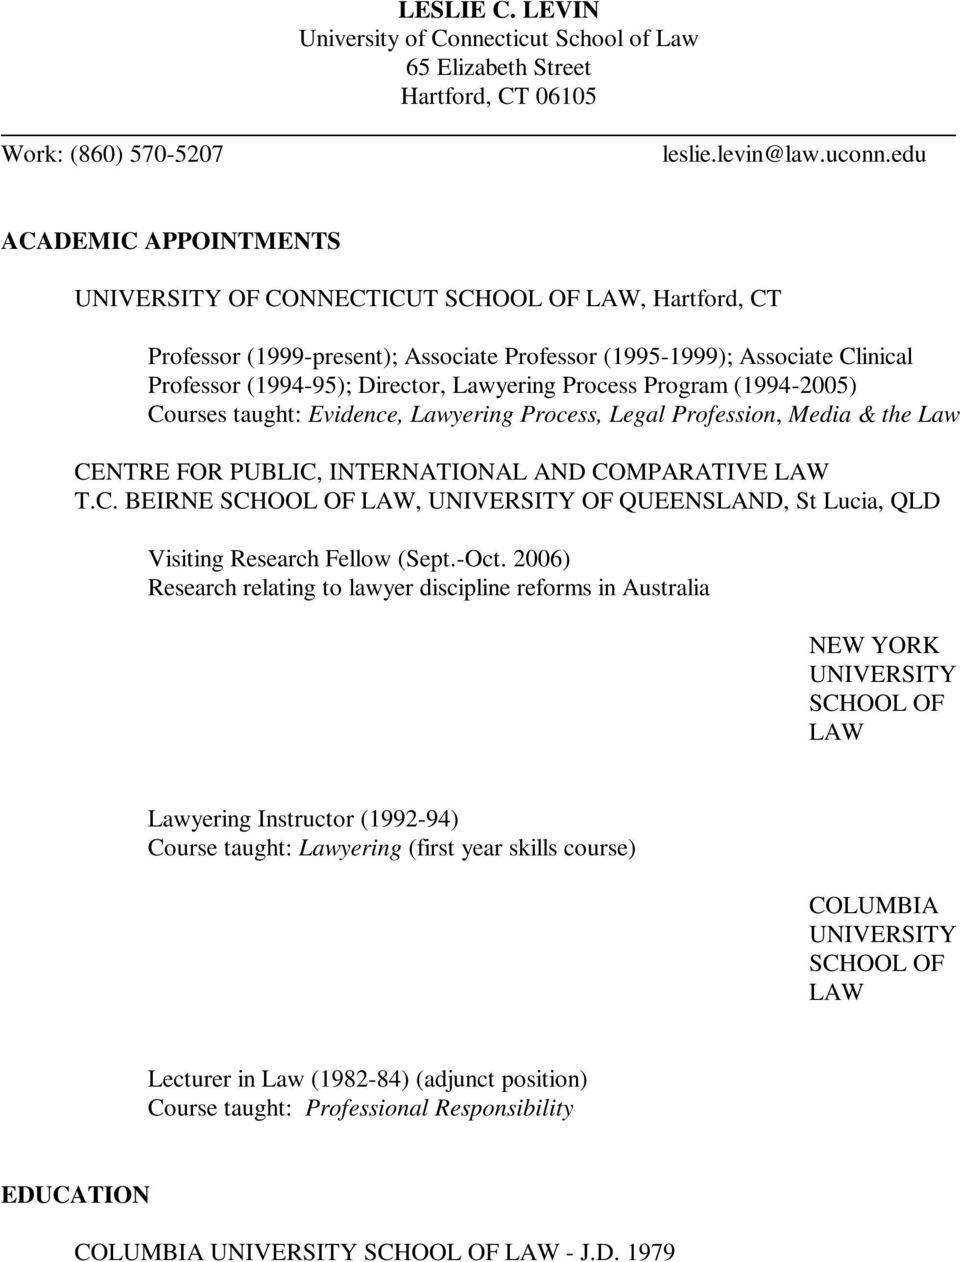 Process Program (1994-2005) Courses taught: Evidence, Lawyering Process, Legal Profession, Media & the Law CENTRE FOR PUBLIC, INTERNATIONAL AND COMPARATIVE LAW T.C. BEIRNE SCHOOL OF LAW, UNIVERSITY OF QUEENSLAND, St Lucia, QLD Visiting Research Fellow (Sept.